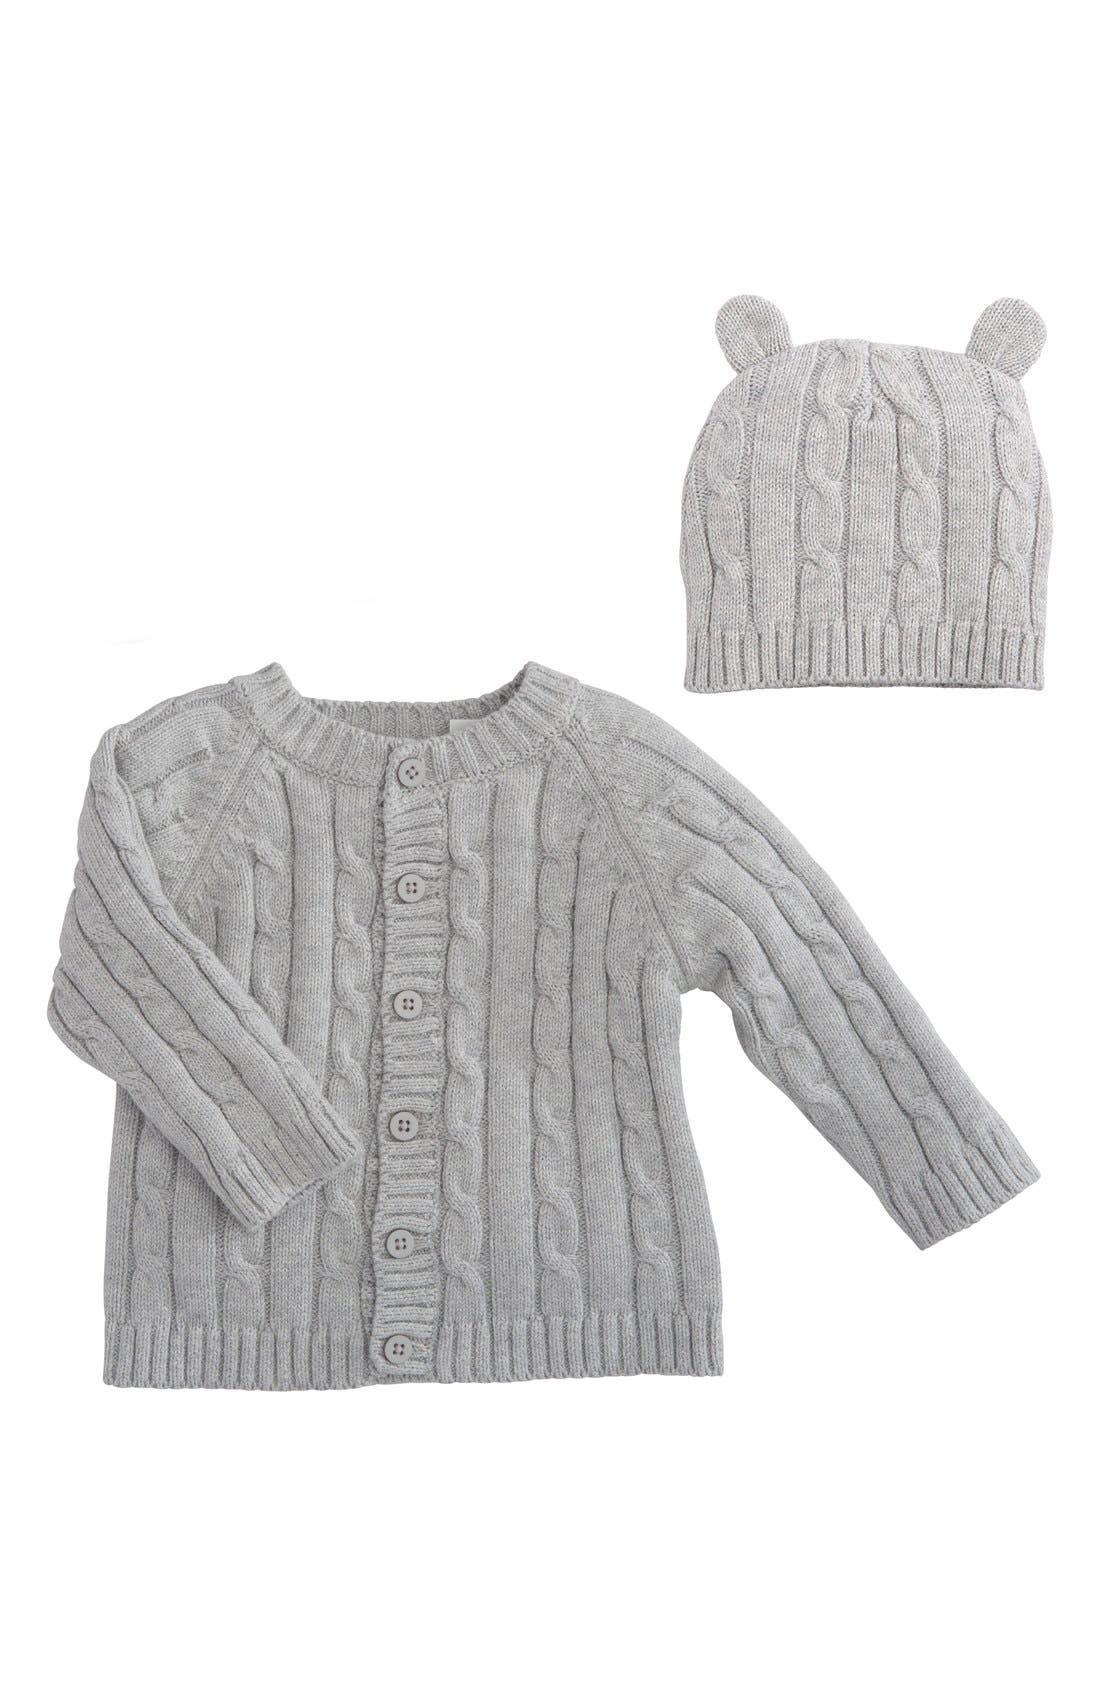 ELEGANT BABY, Cable Knit Sweater & Hat Set, Main thumbnail 1, color, GRAY